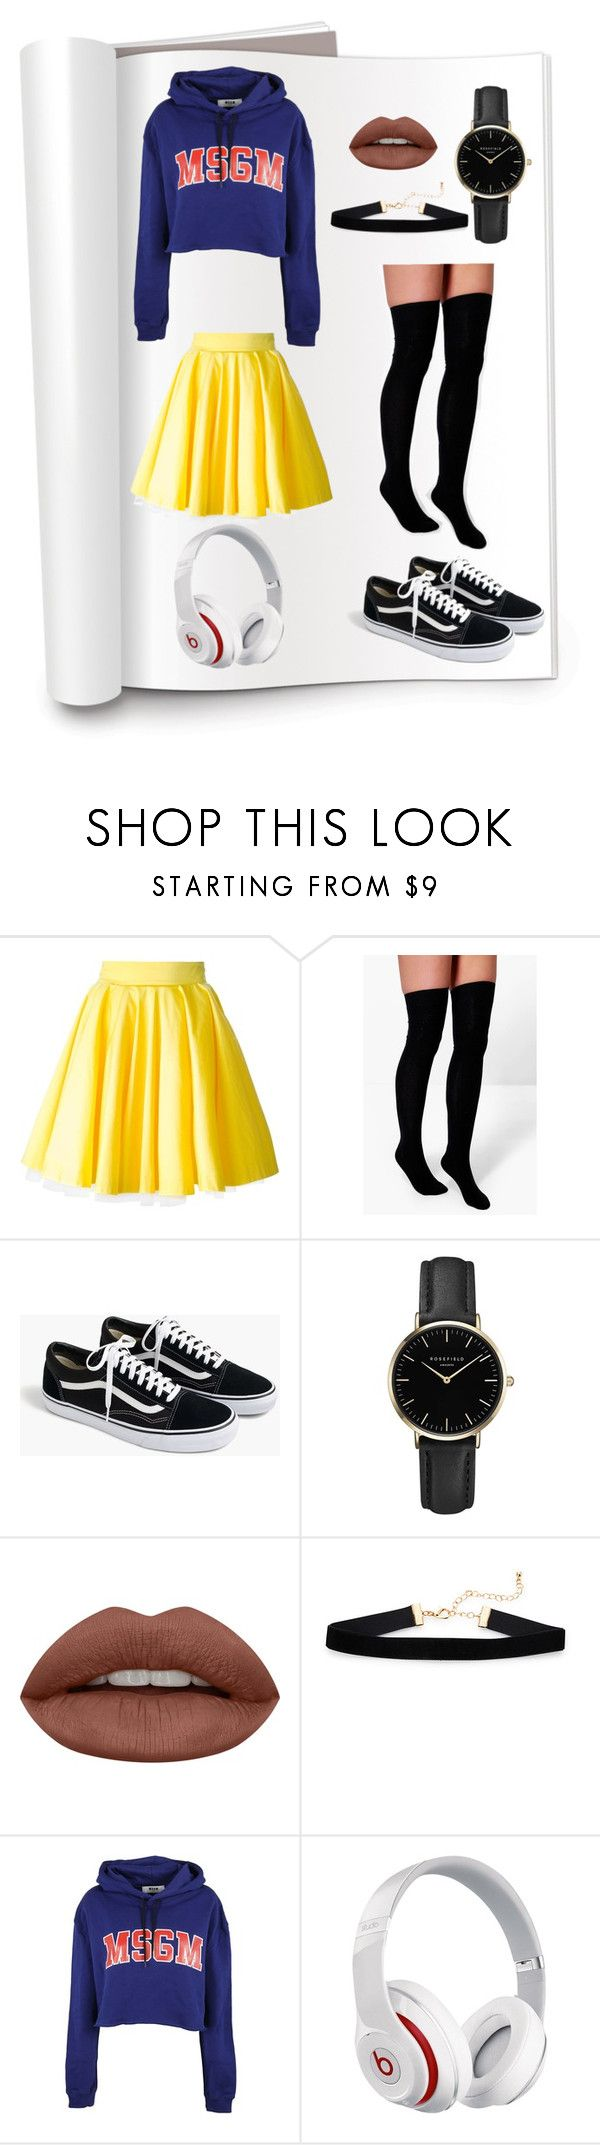 """whatever"" by tiyati on Polyvore featuring Philipp Plein, Boohoo, J.Crew, ROSEFIELD, Huda Beauty, MSGM and Beats by Dr. Dre"